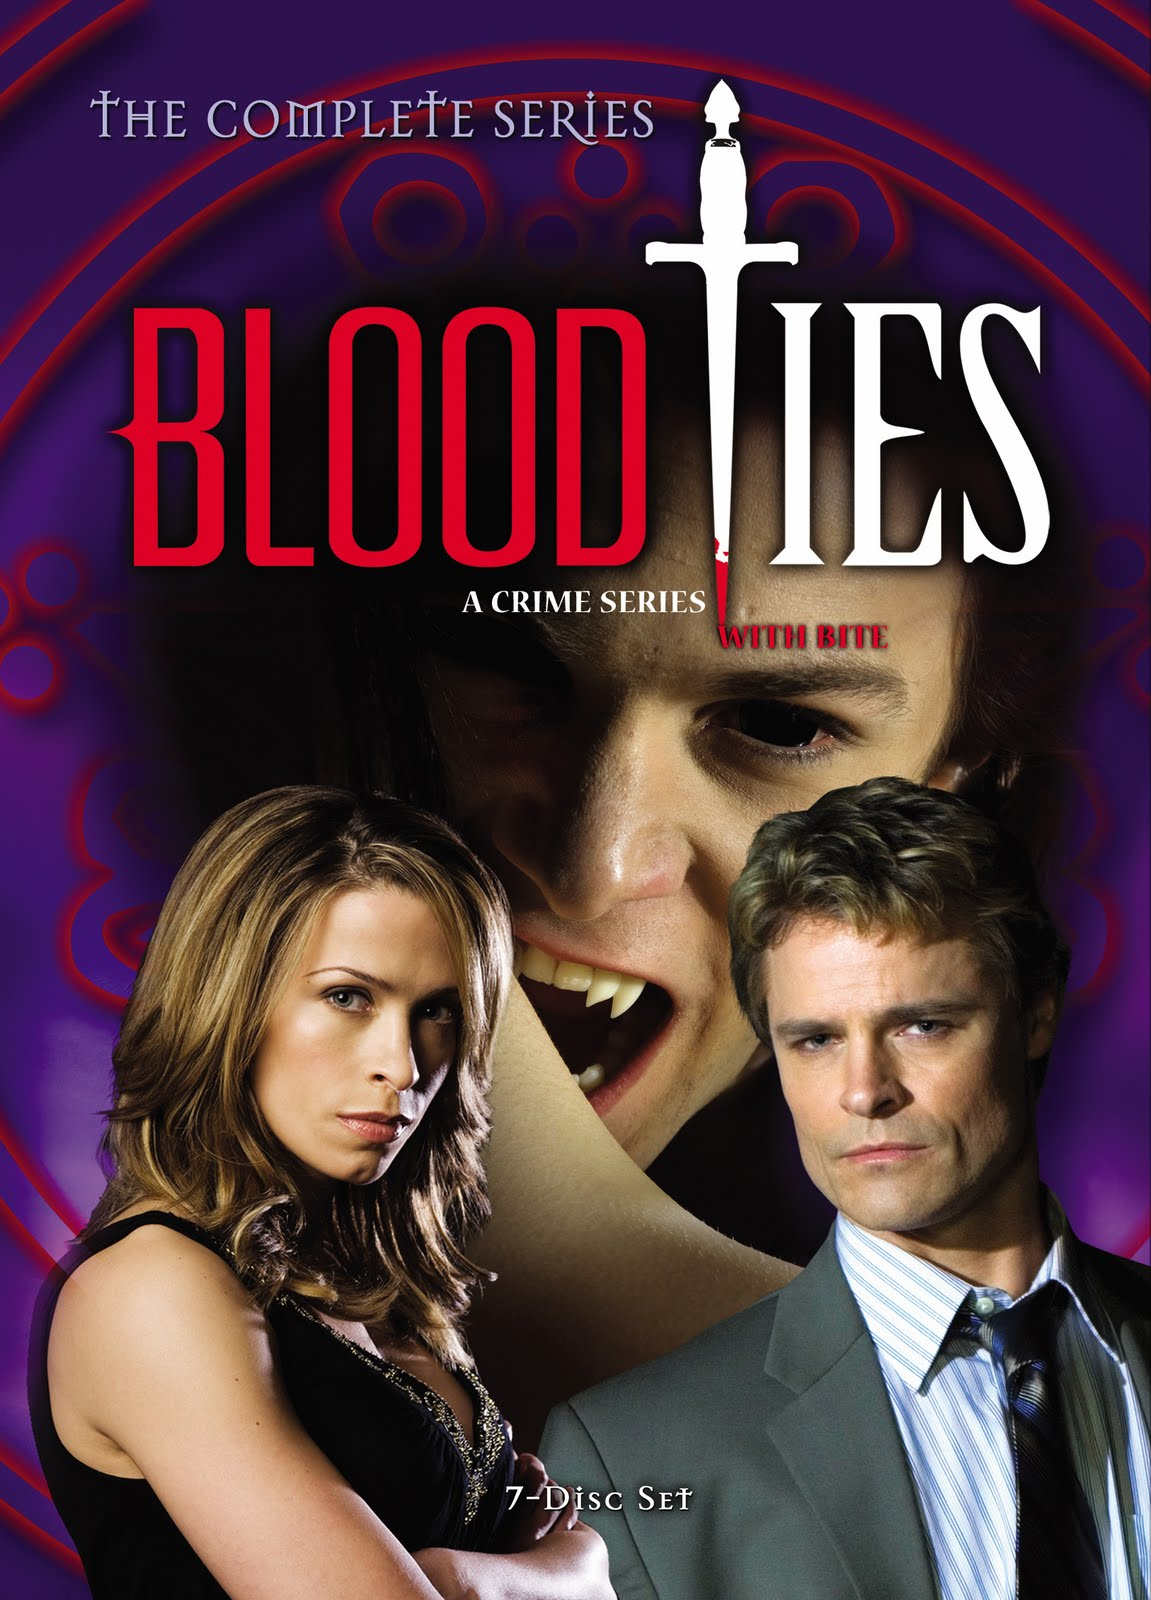 TMW : BLOOD TIES: The Complete Series on DVD and Blu-